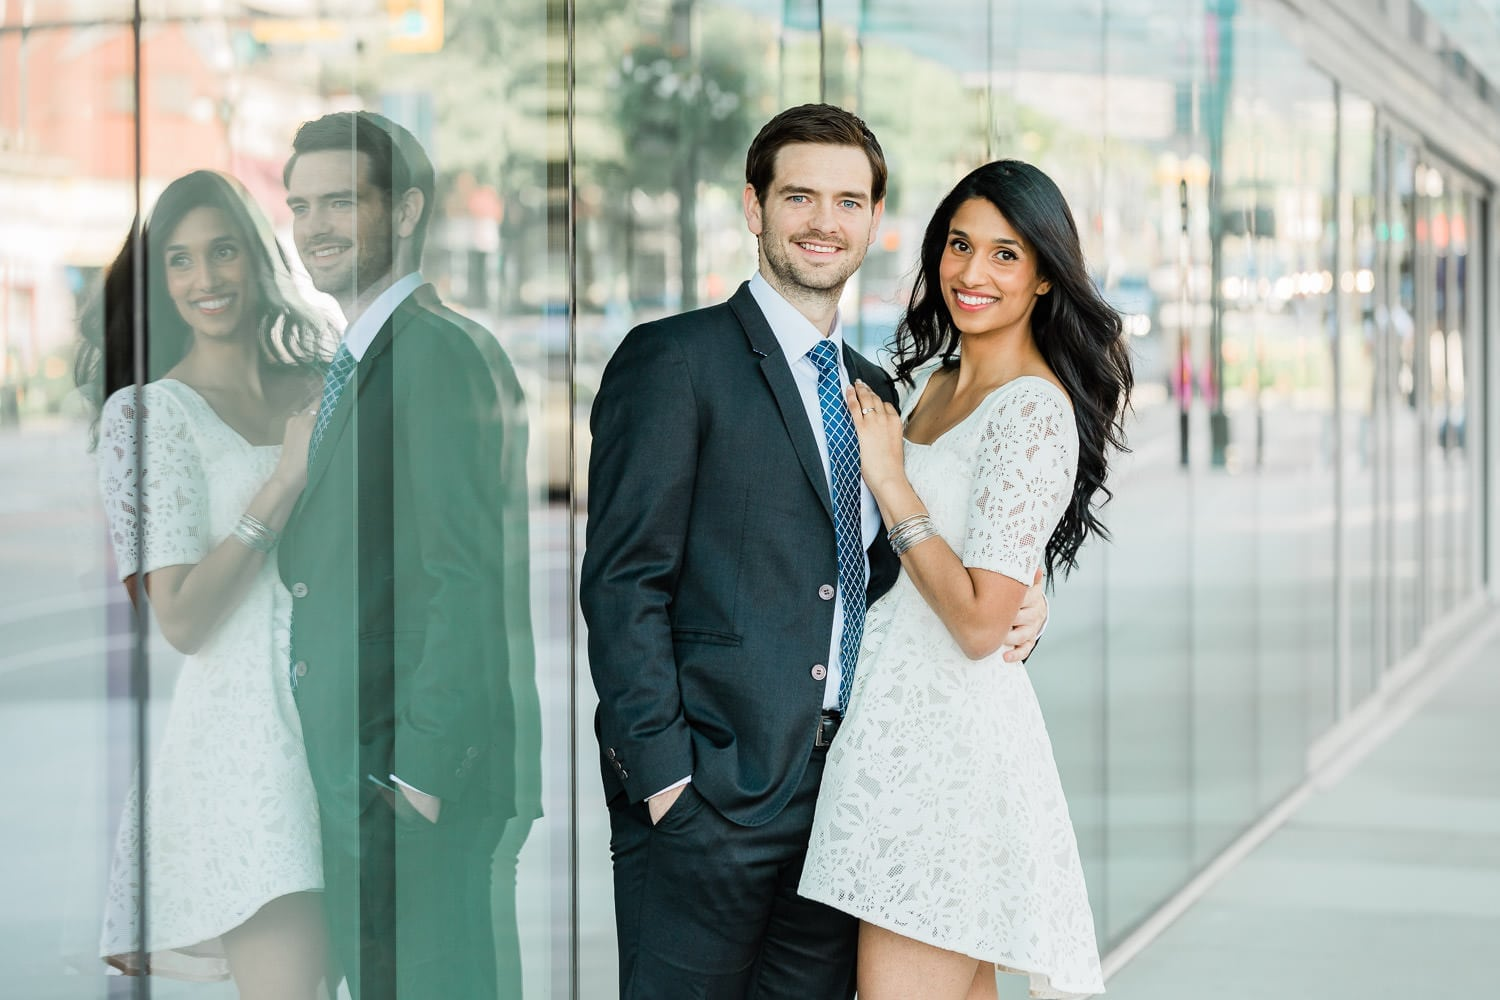 Vancouver engagement photo | Westminster pier park engagement